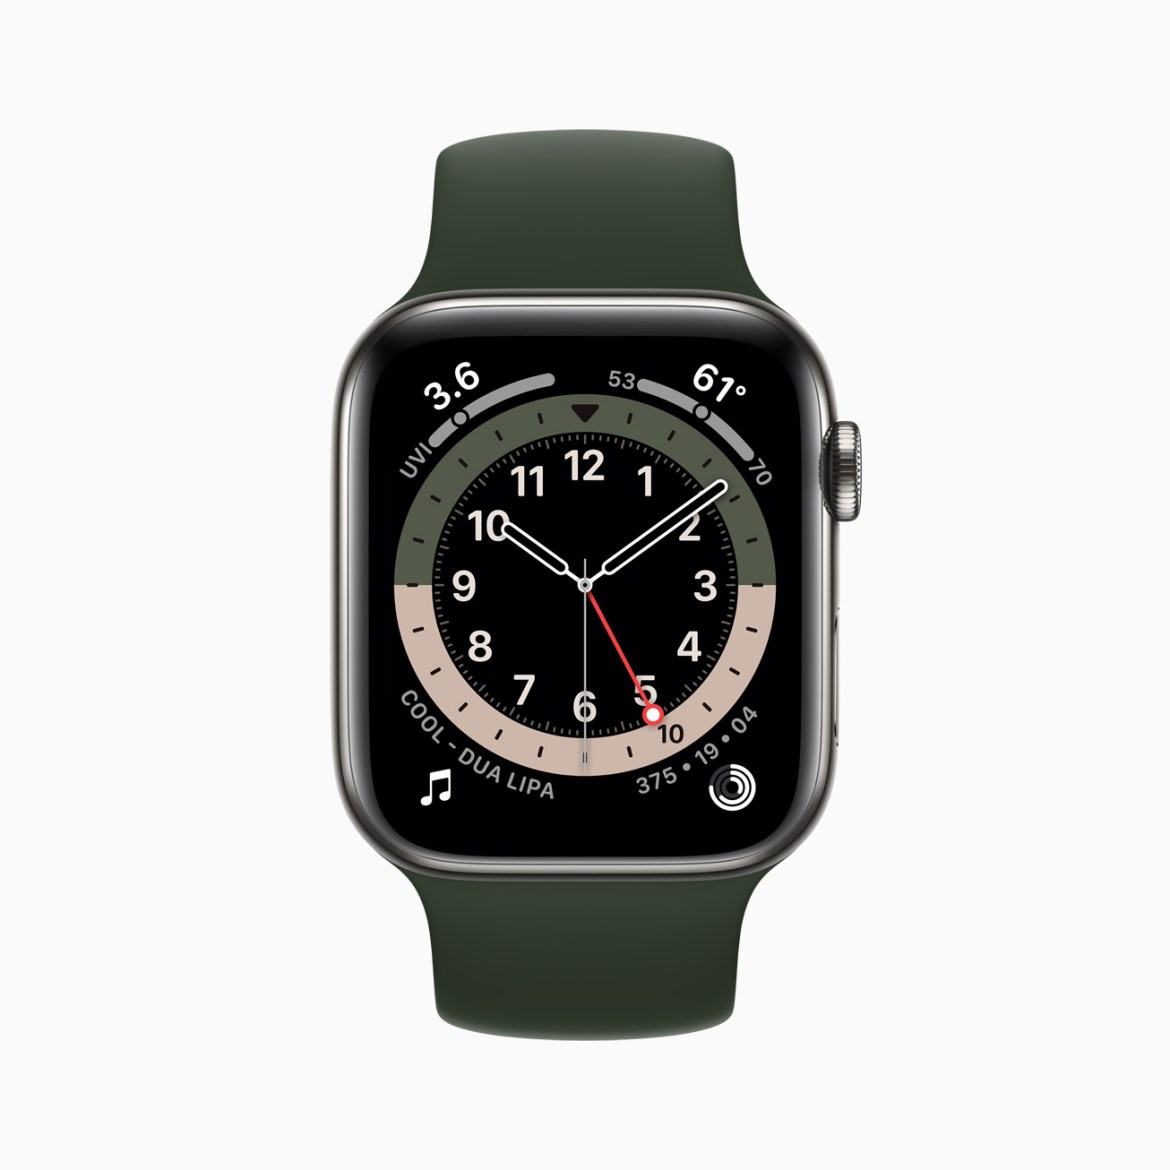 Apple Announced Watch Series 6 Featuring Blood Oxygen Levels and Fitness Capabilities